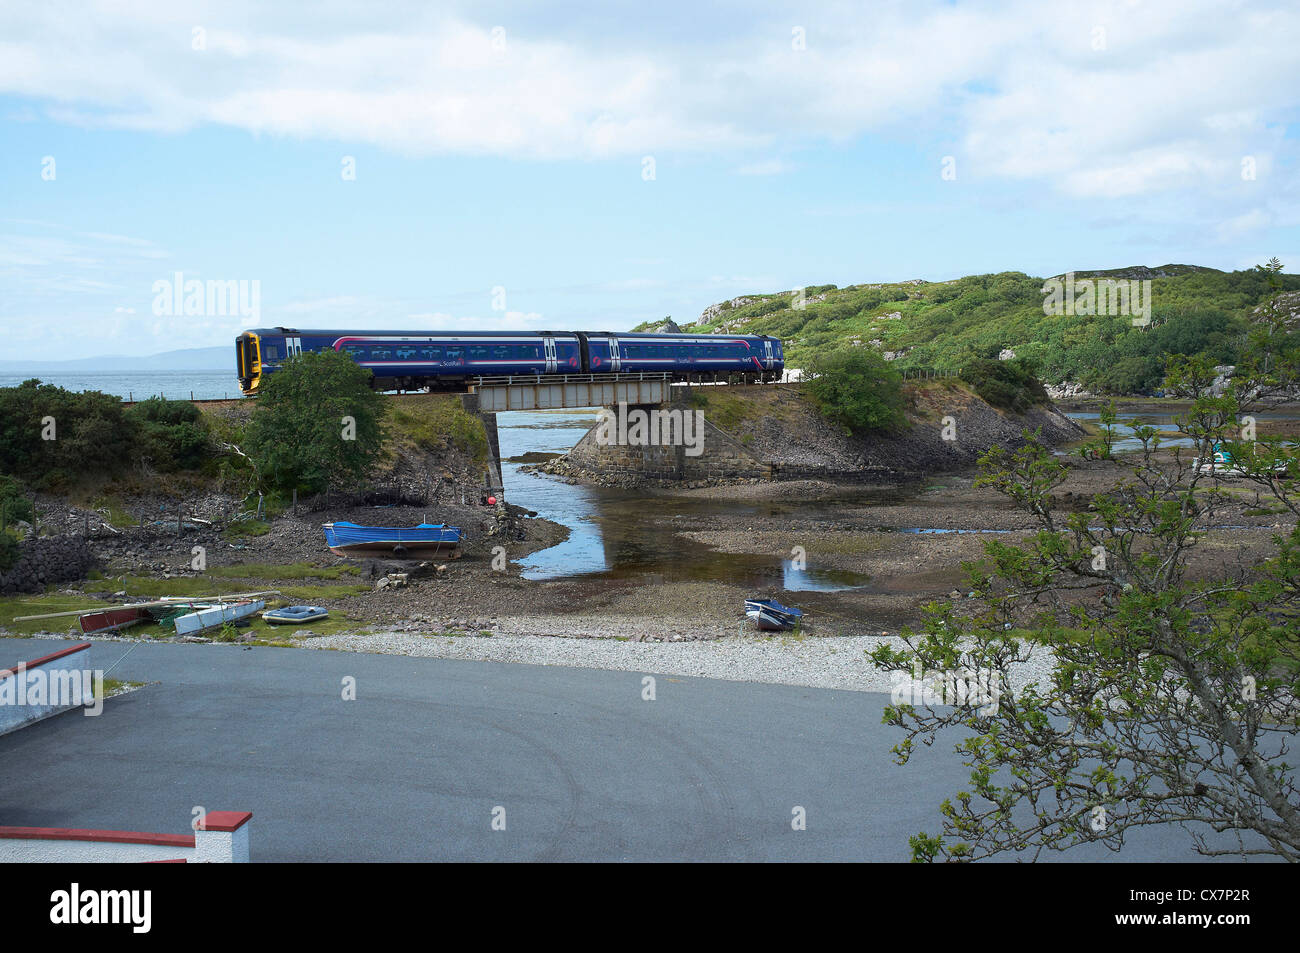 Scotrail Train on Kyle line at Erbusaig near Kyle of Lochalsh, Wester Ross, North West Scotland - Stock Image